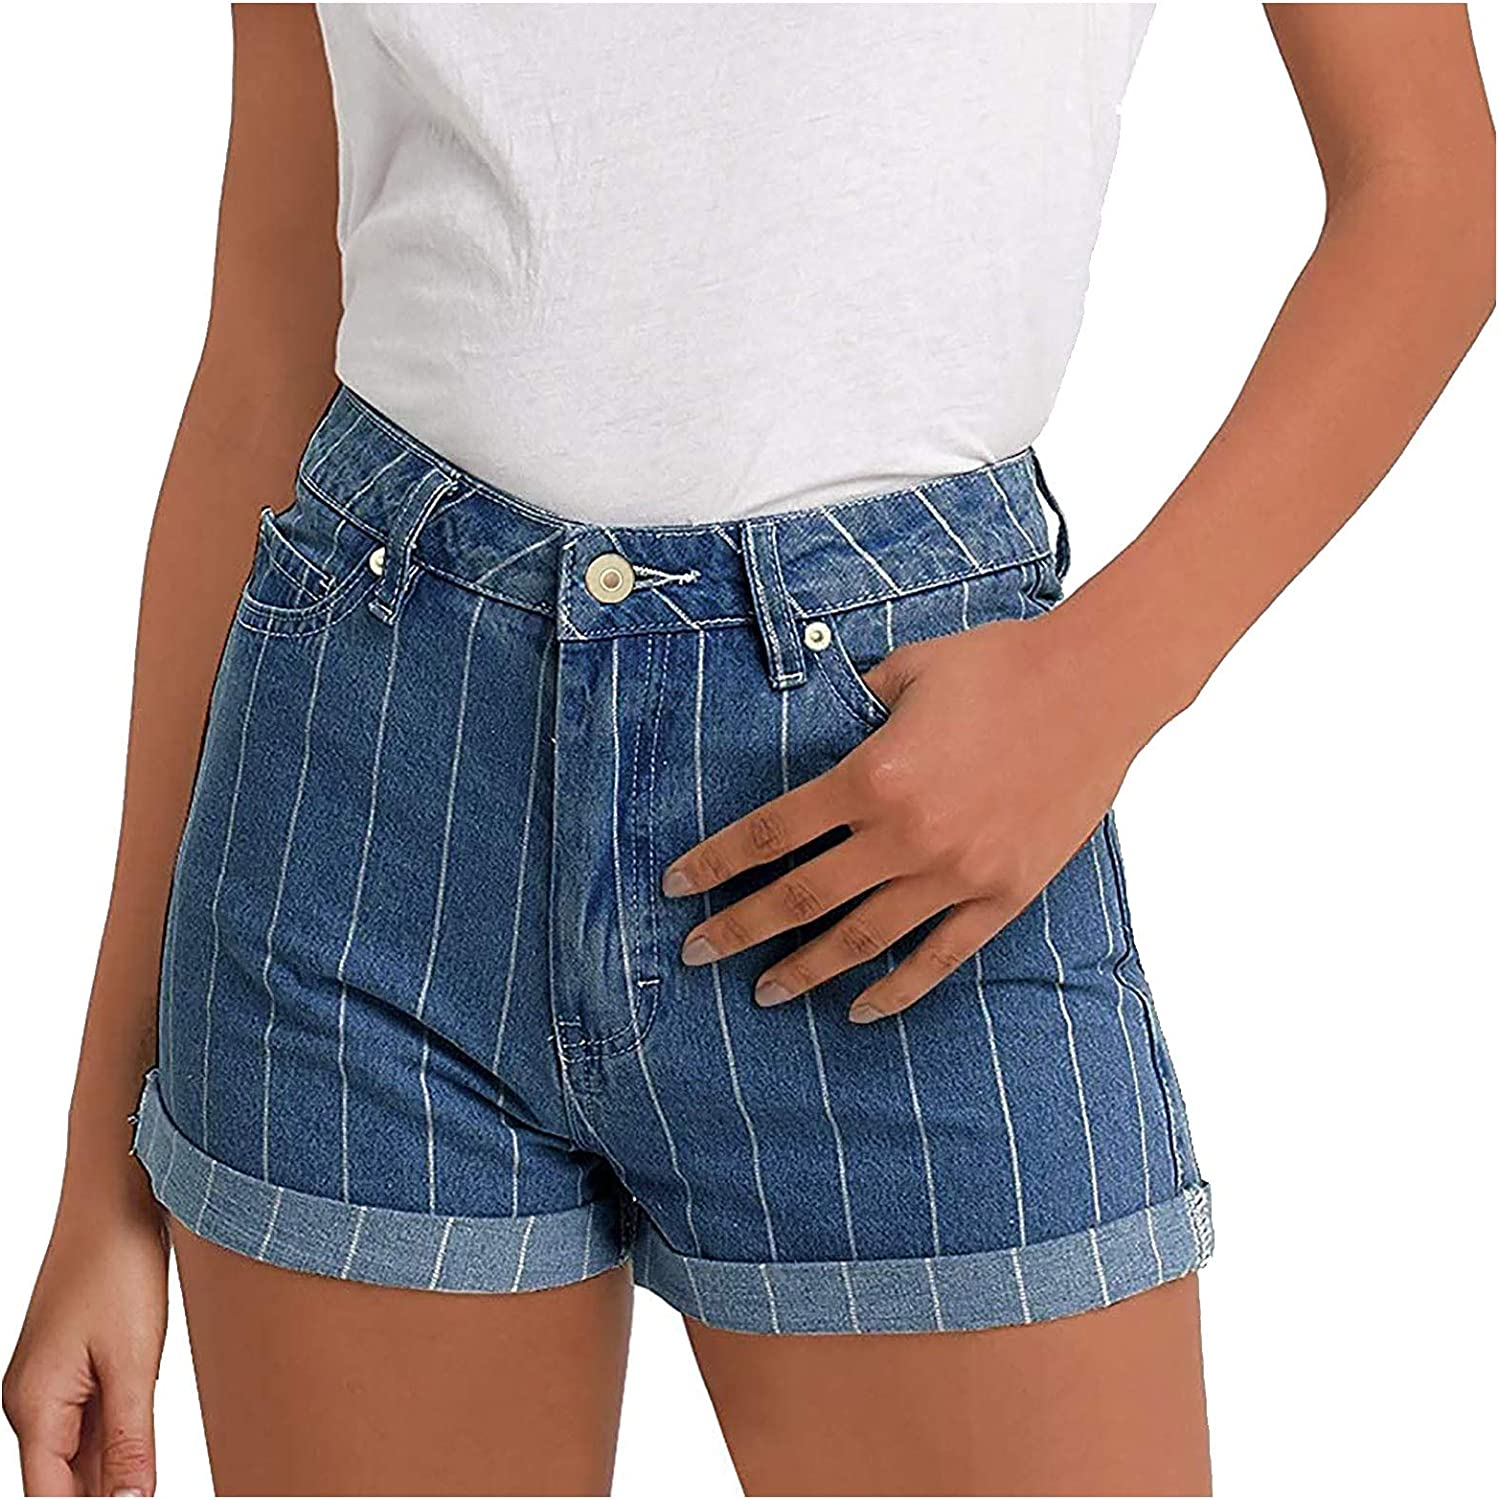 Jean Shorts for Women Summer, Stretch Skinny Denim Shorts with Rolled-Up Hem Plaid Casual Washed Hot Pants